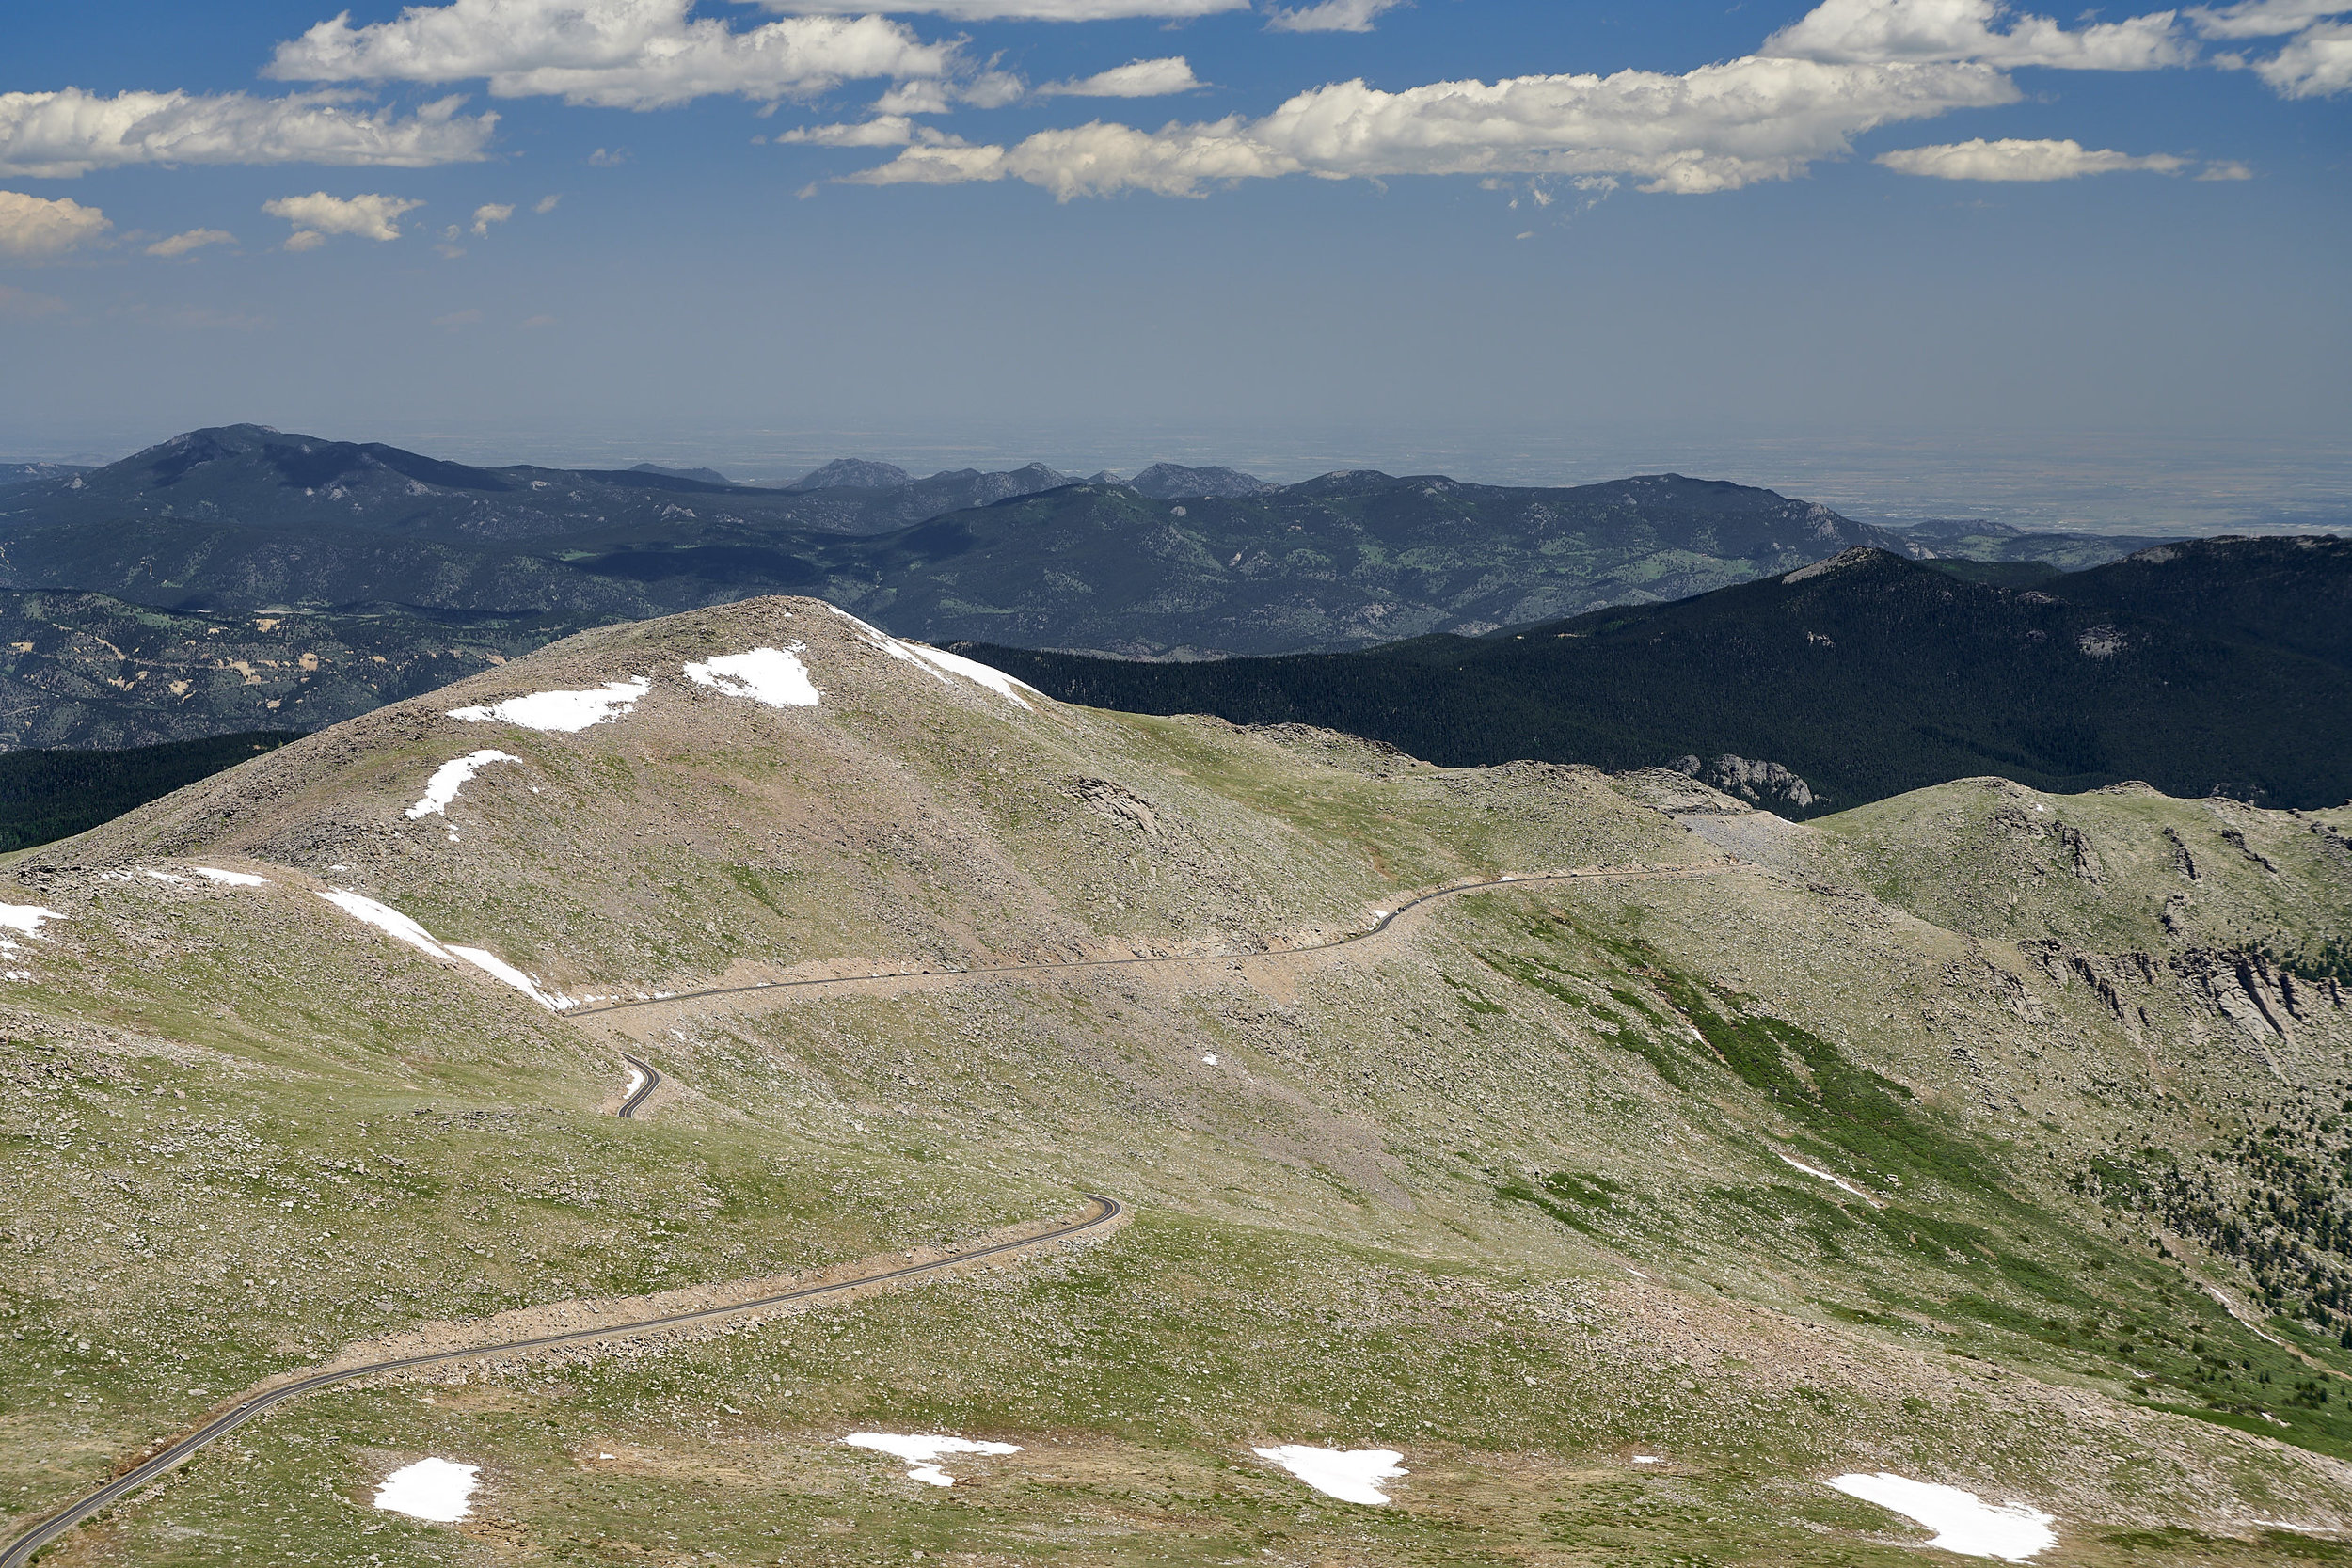 One of the many views from Mt. Evans' summit